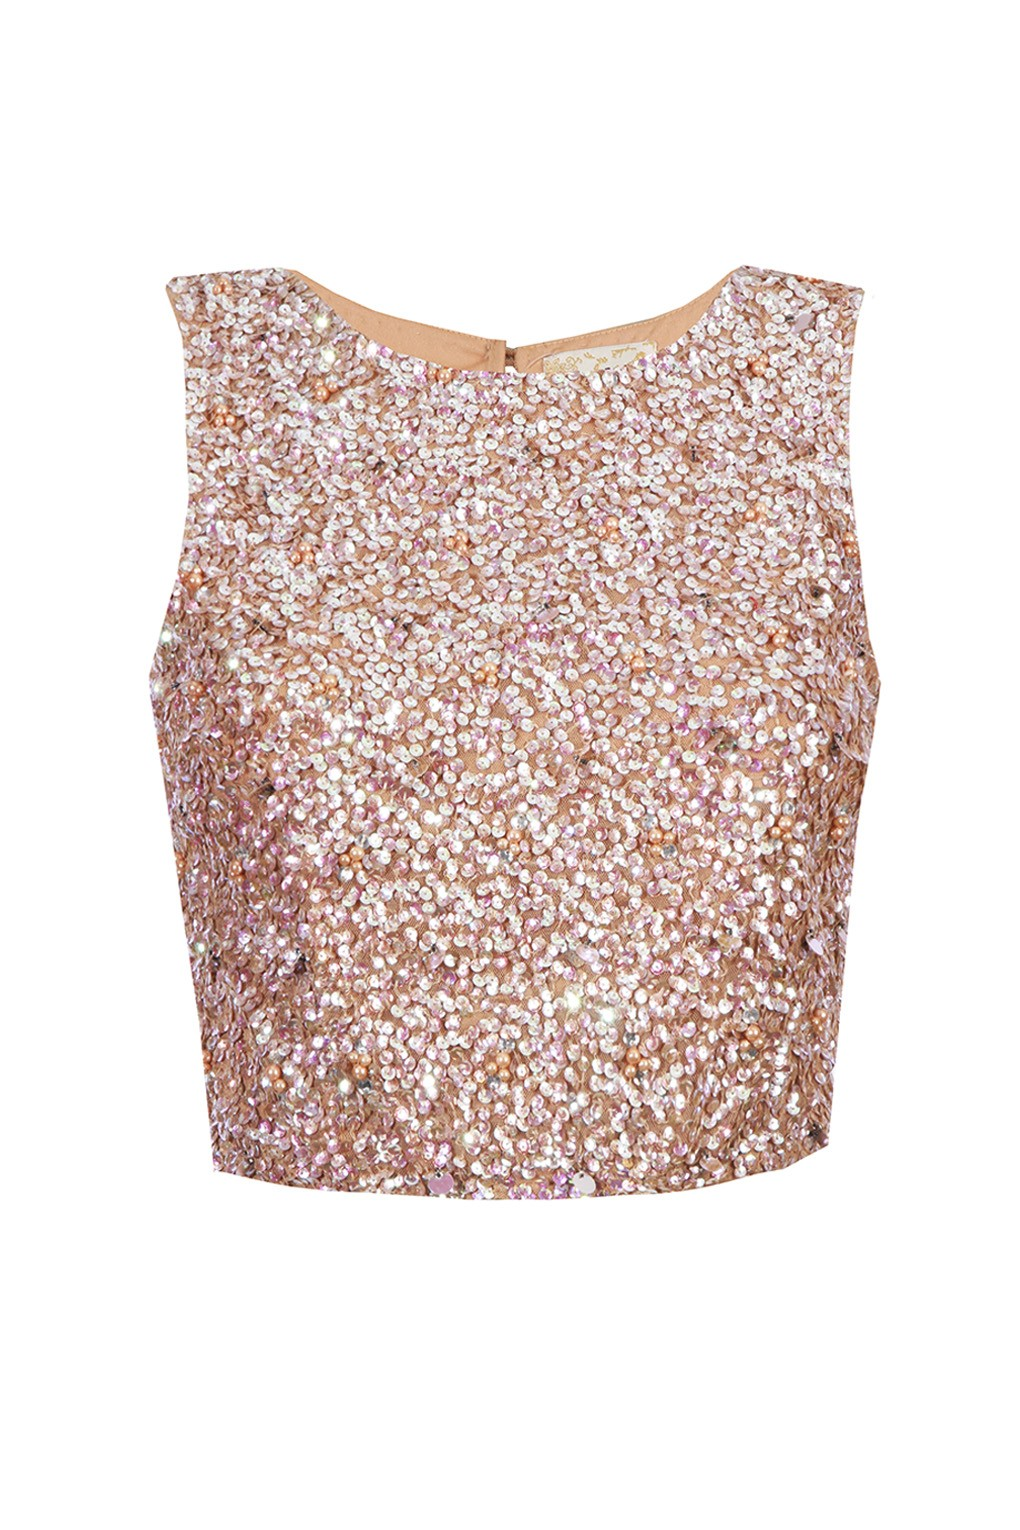 Lace Amp Beads Picasso Nude Sequin Top Tops